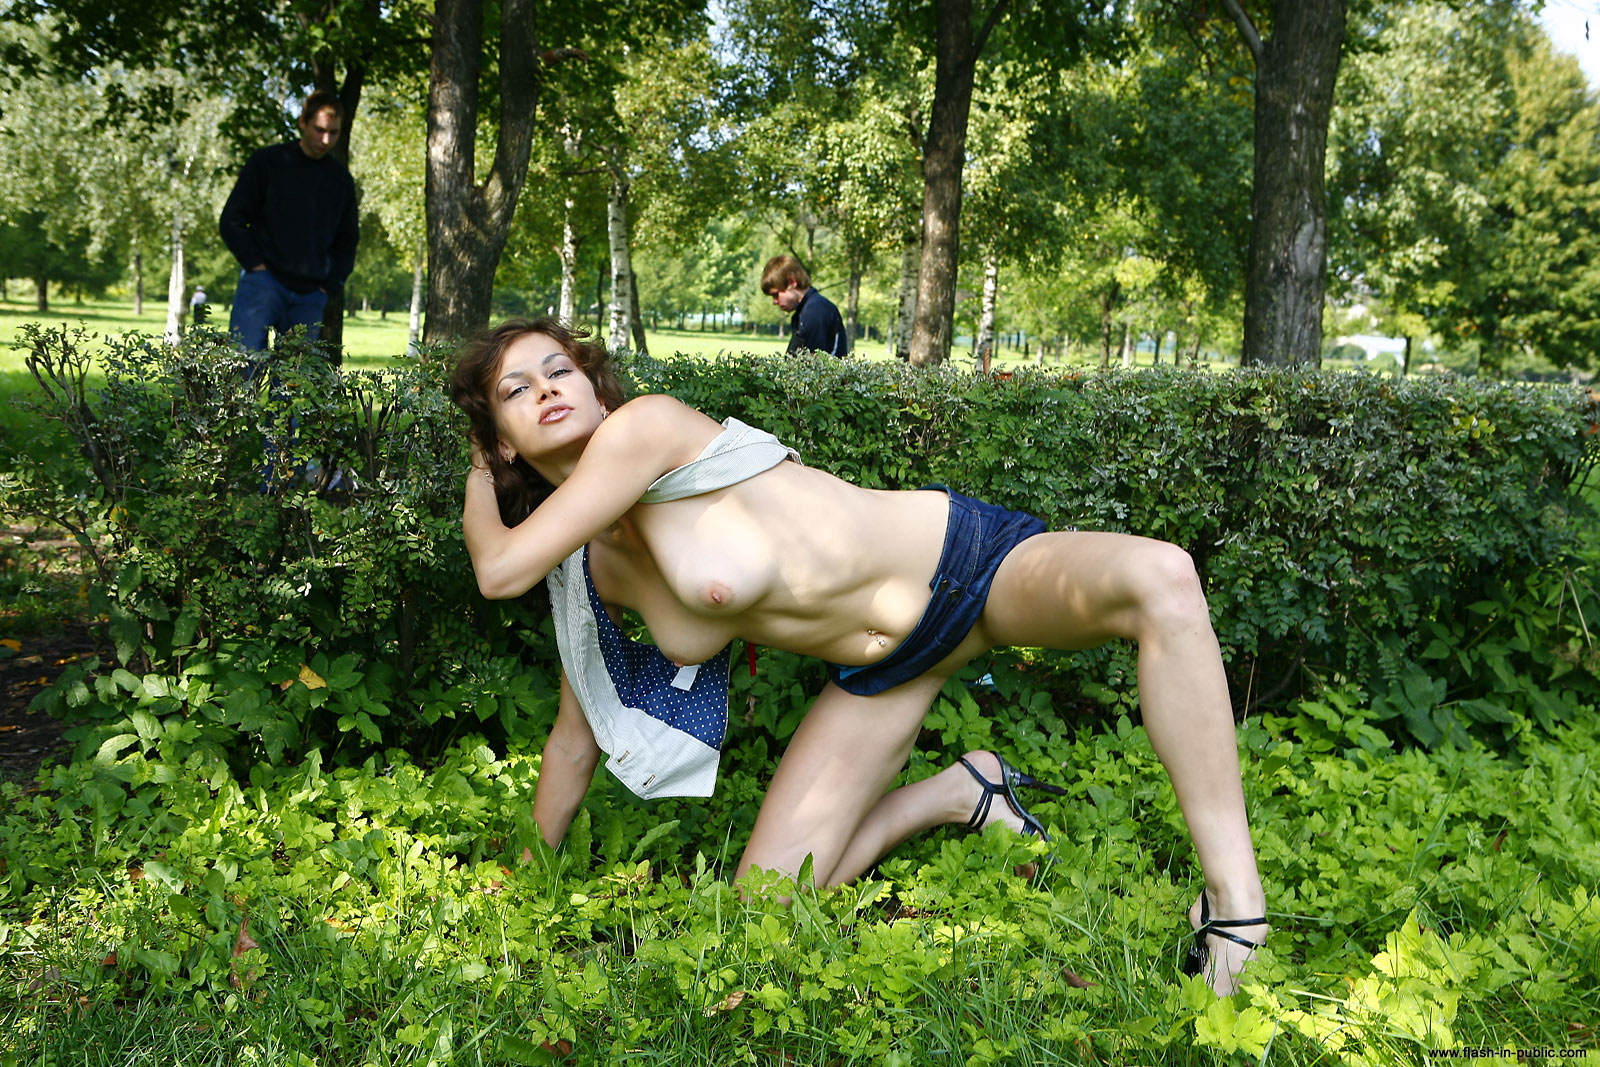 marianna-h-nude-park-flash-in-public-17